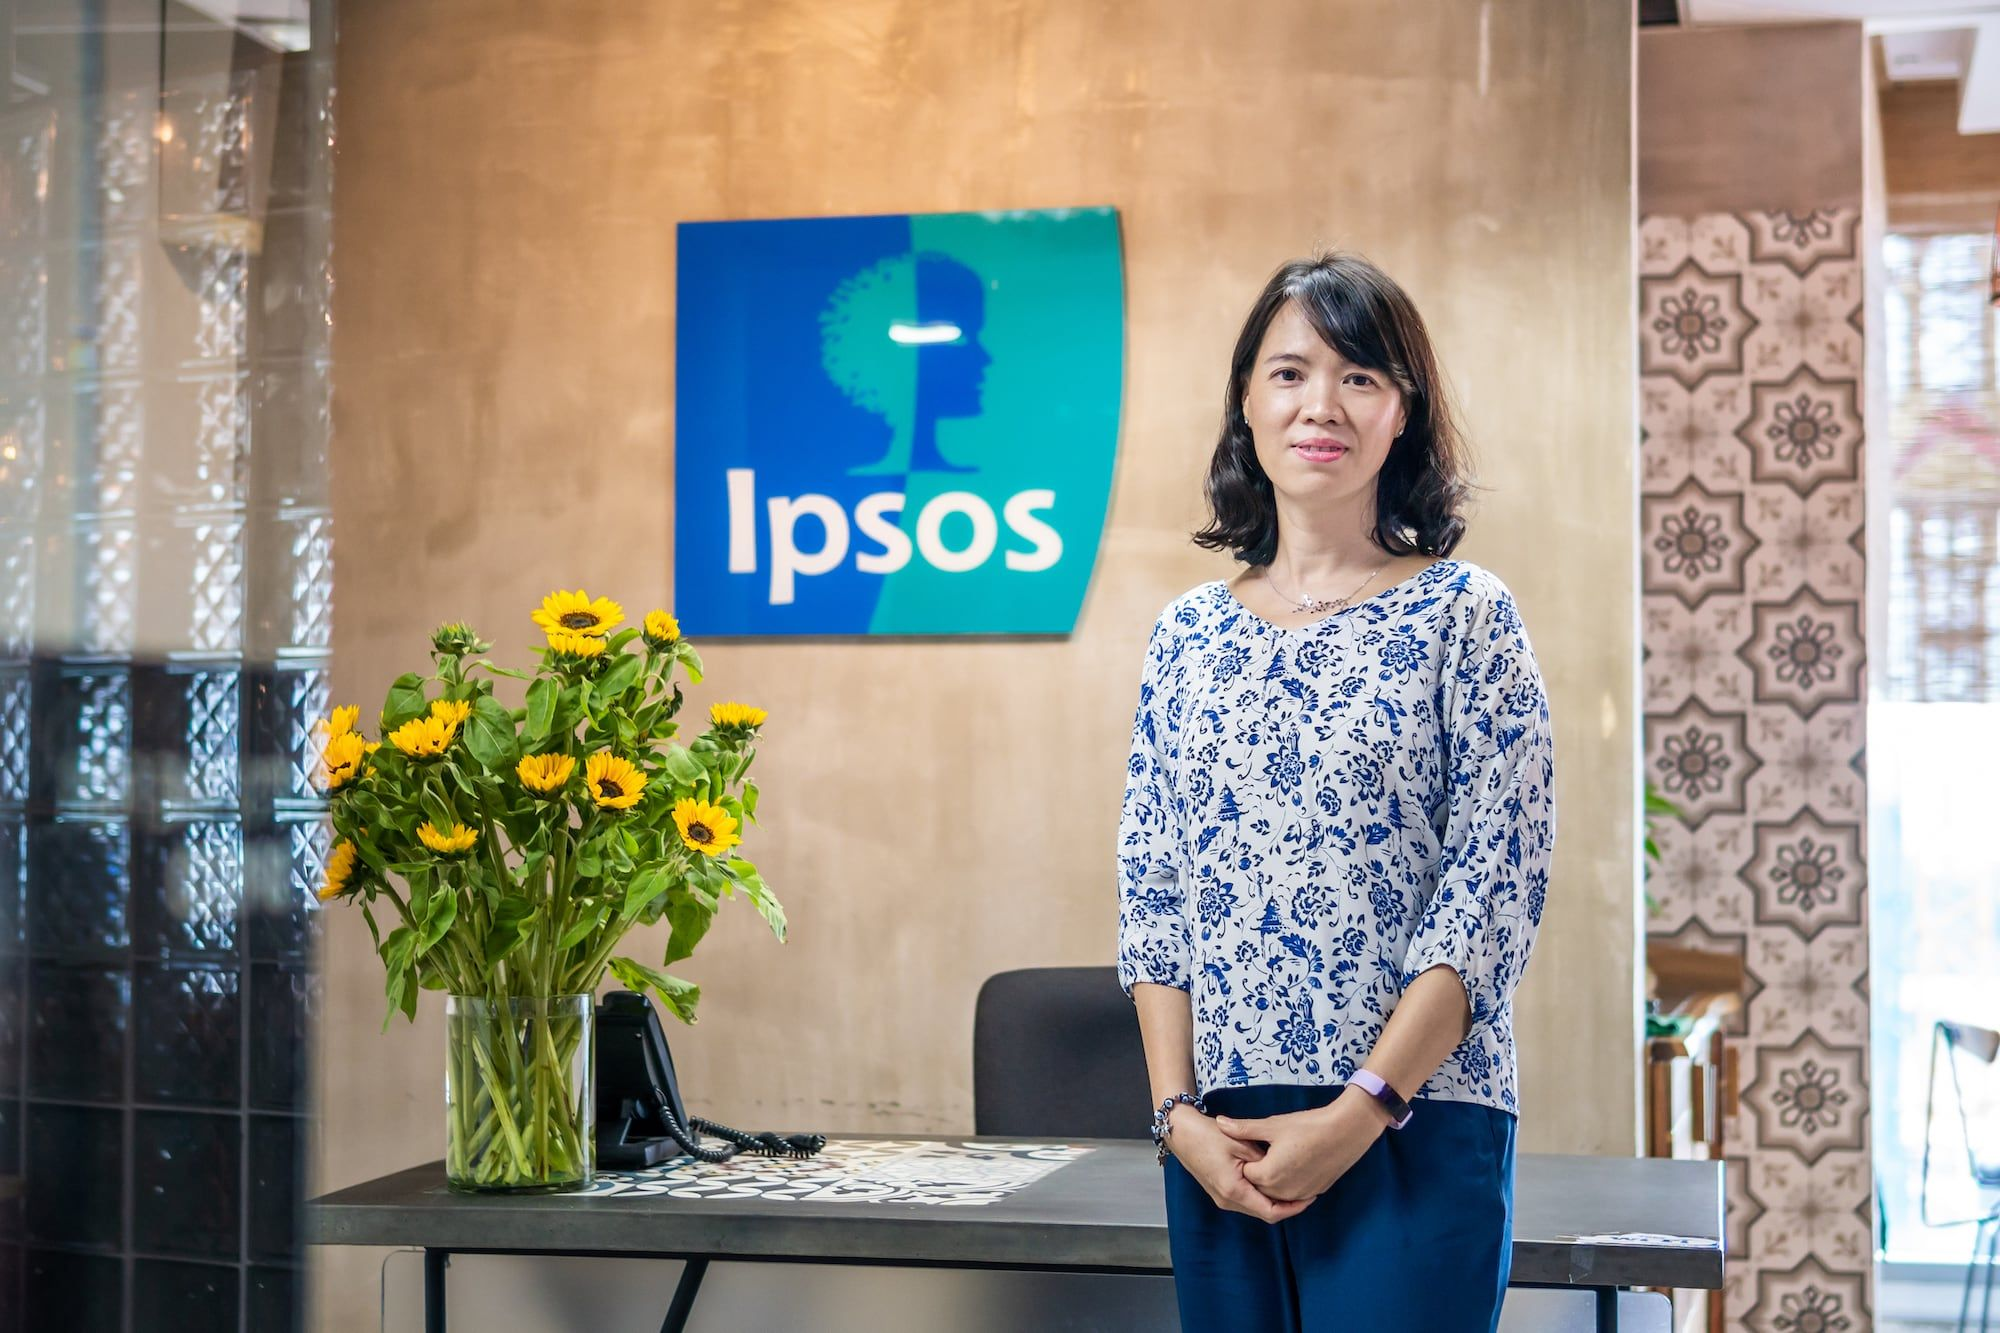 Home Of Digital Researches — Ngan Ly, Country Manager of Ipsos, Vietnam On Embracing Change